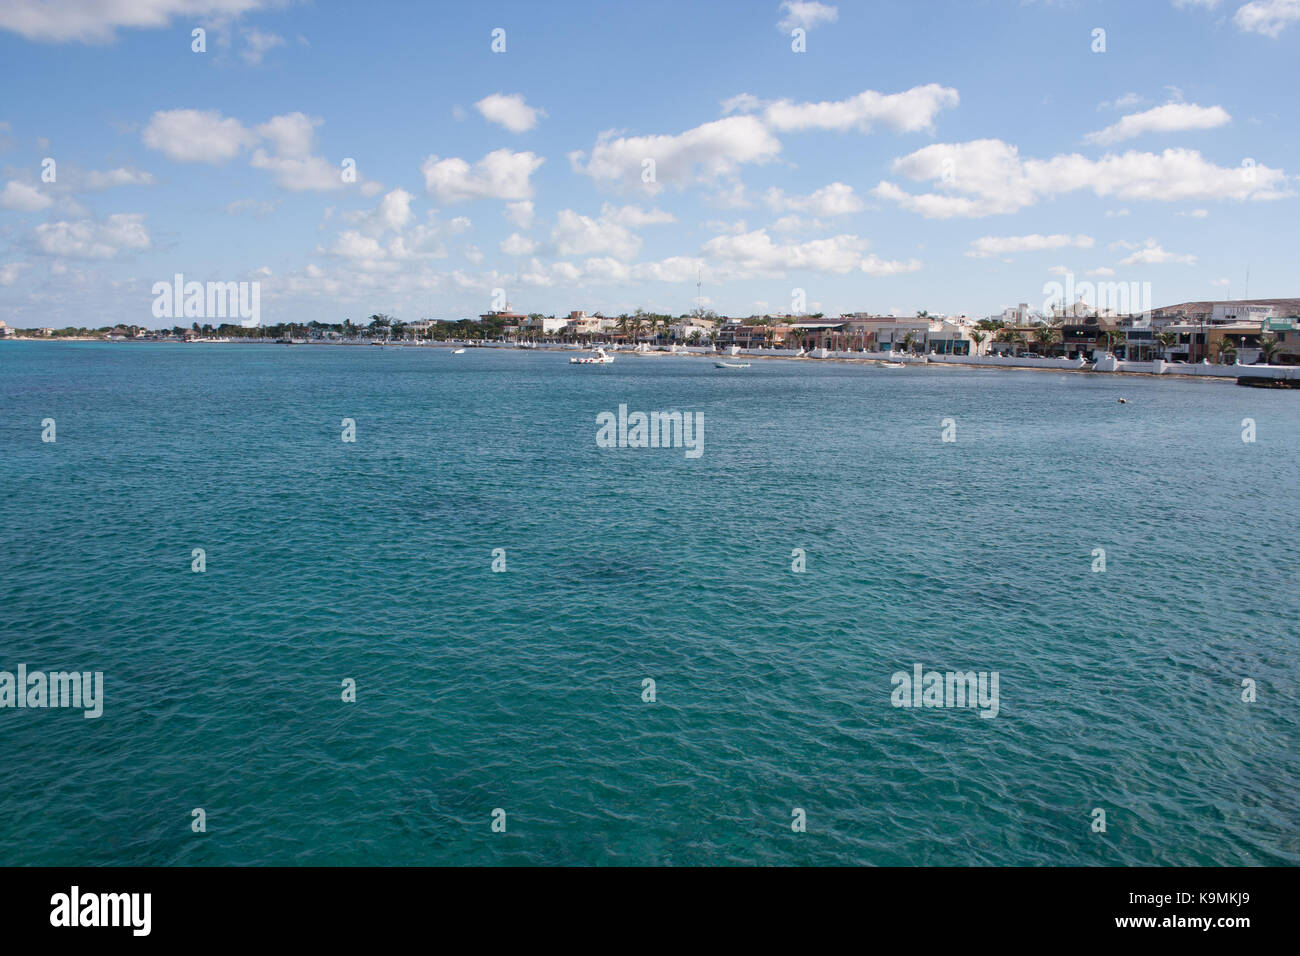 Views of the San Miguel coastline on the island of Cozumel, Mexico seen from a boat on the sea. - Stock Image